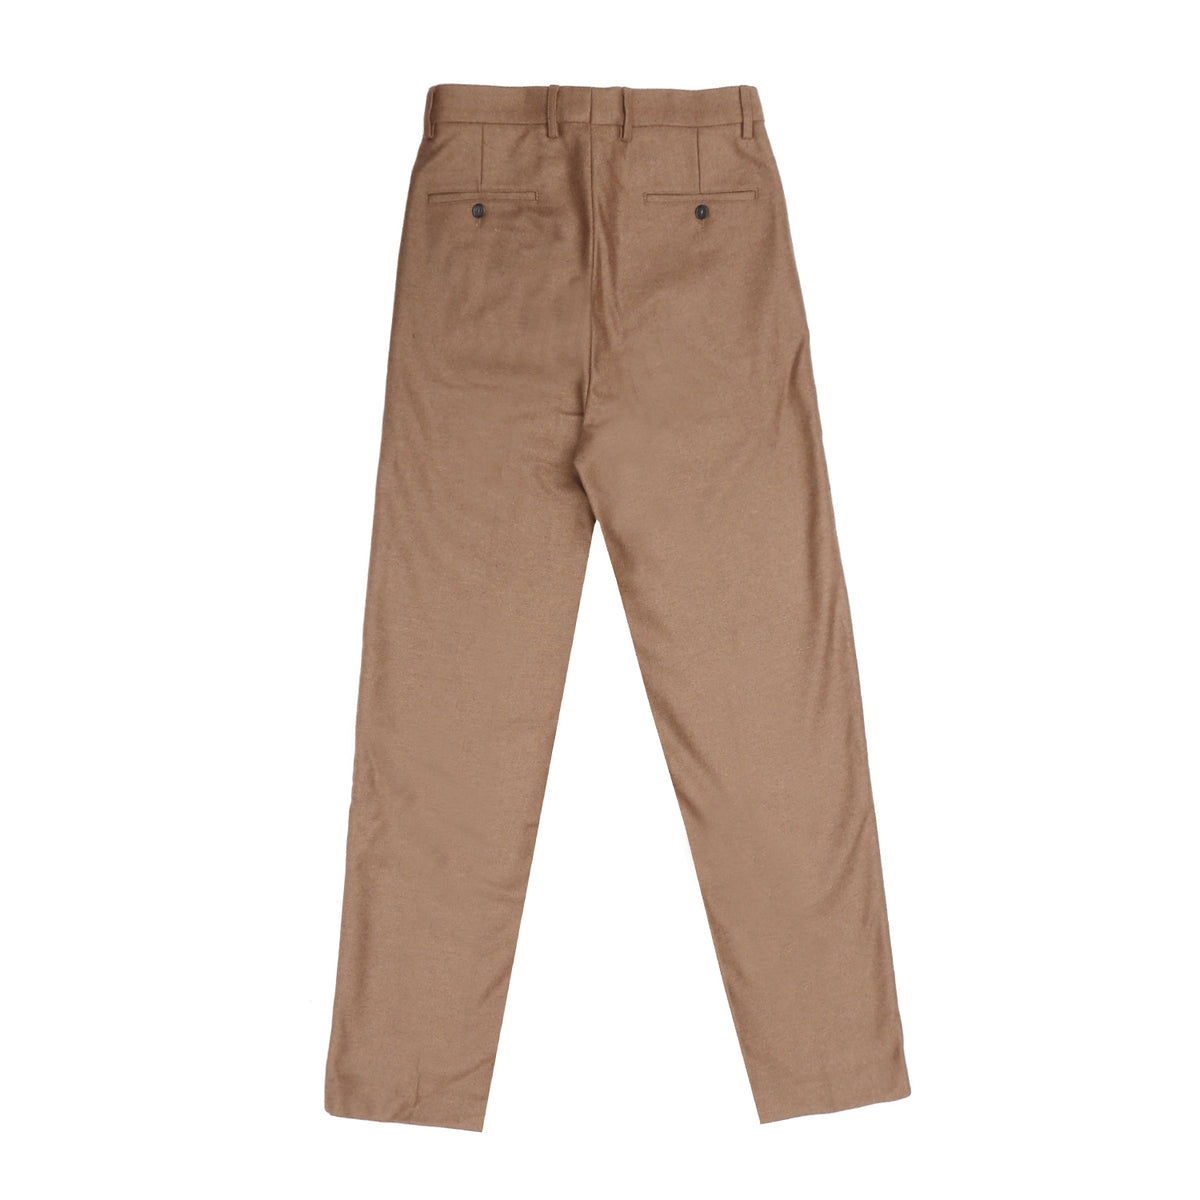 OVERSIZED TROUSERS - CAMEL